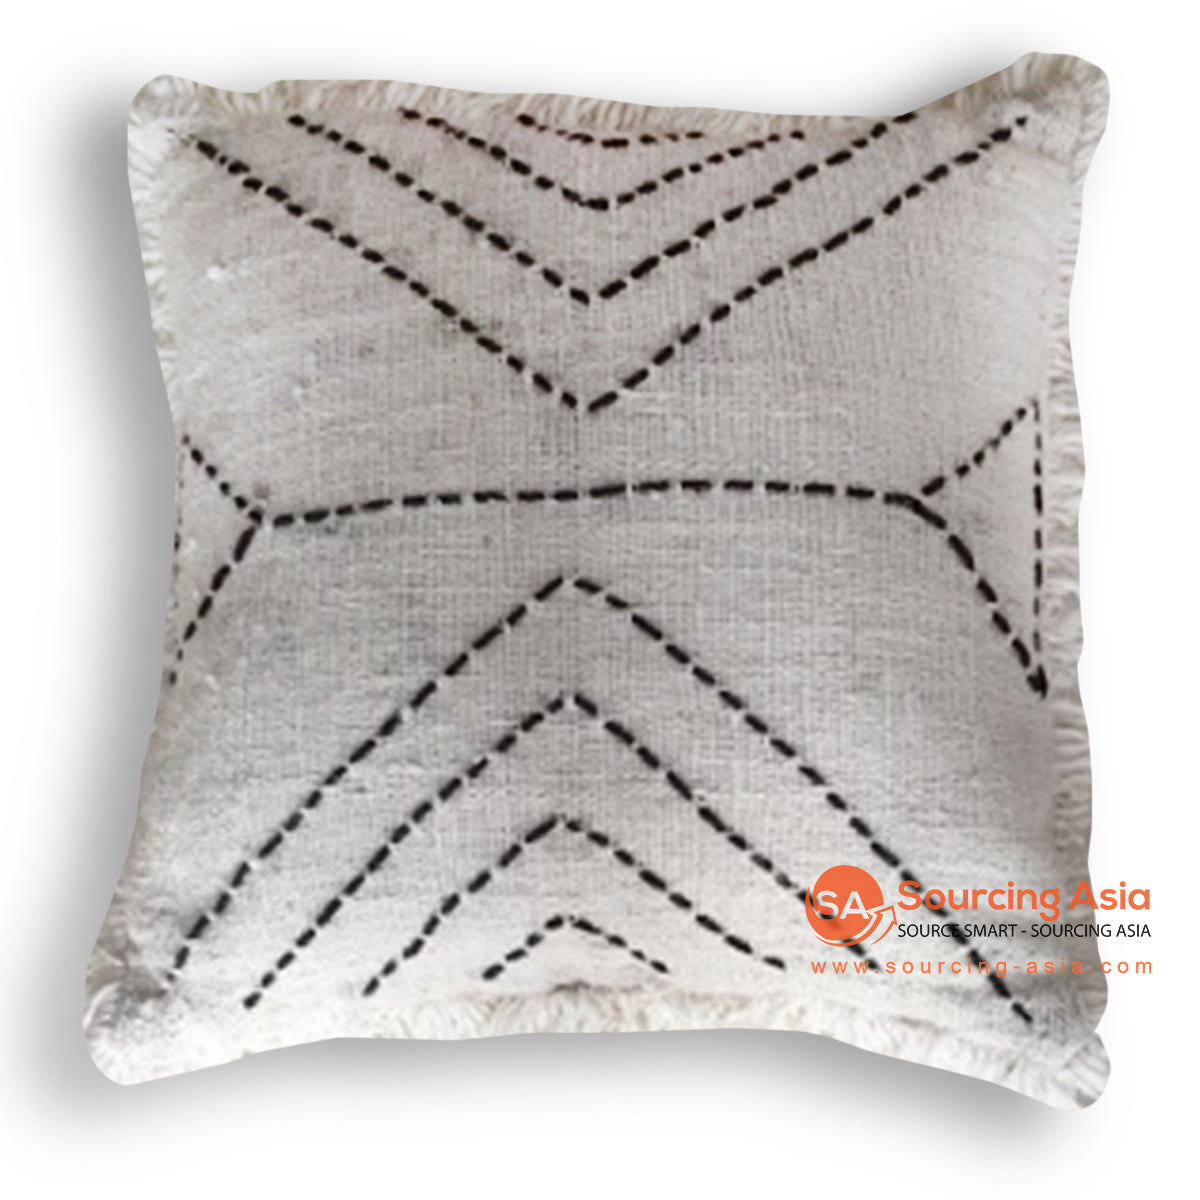 HIP026 HAND STITCHED COVER PILLOW WITH FRINGE 50 X 50 CM